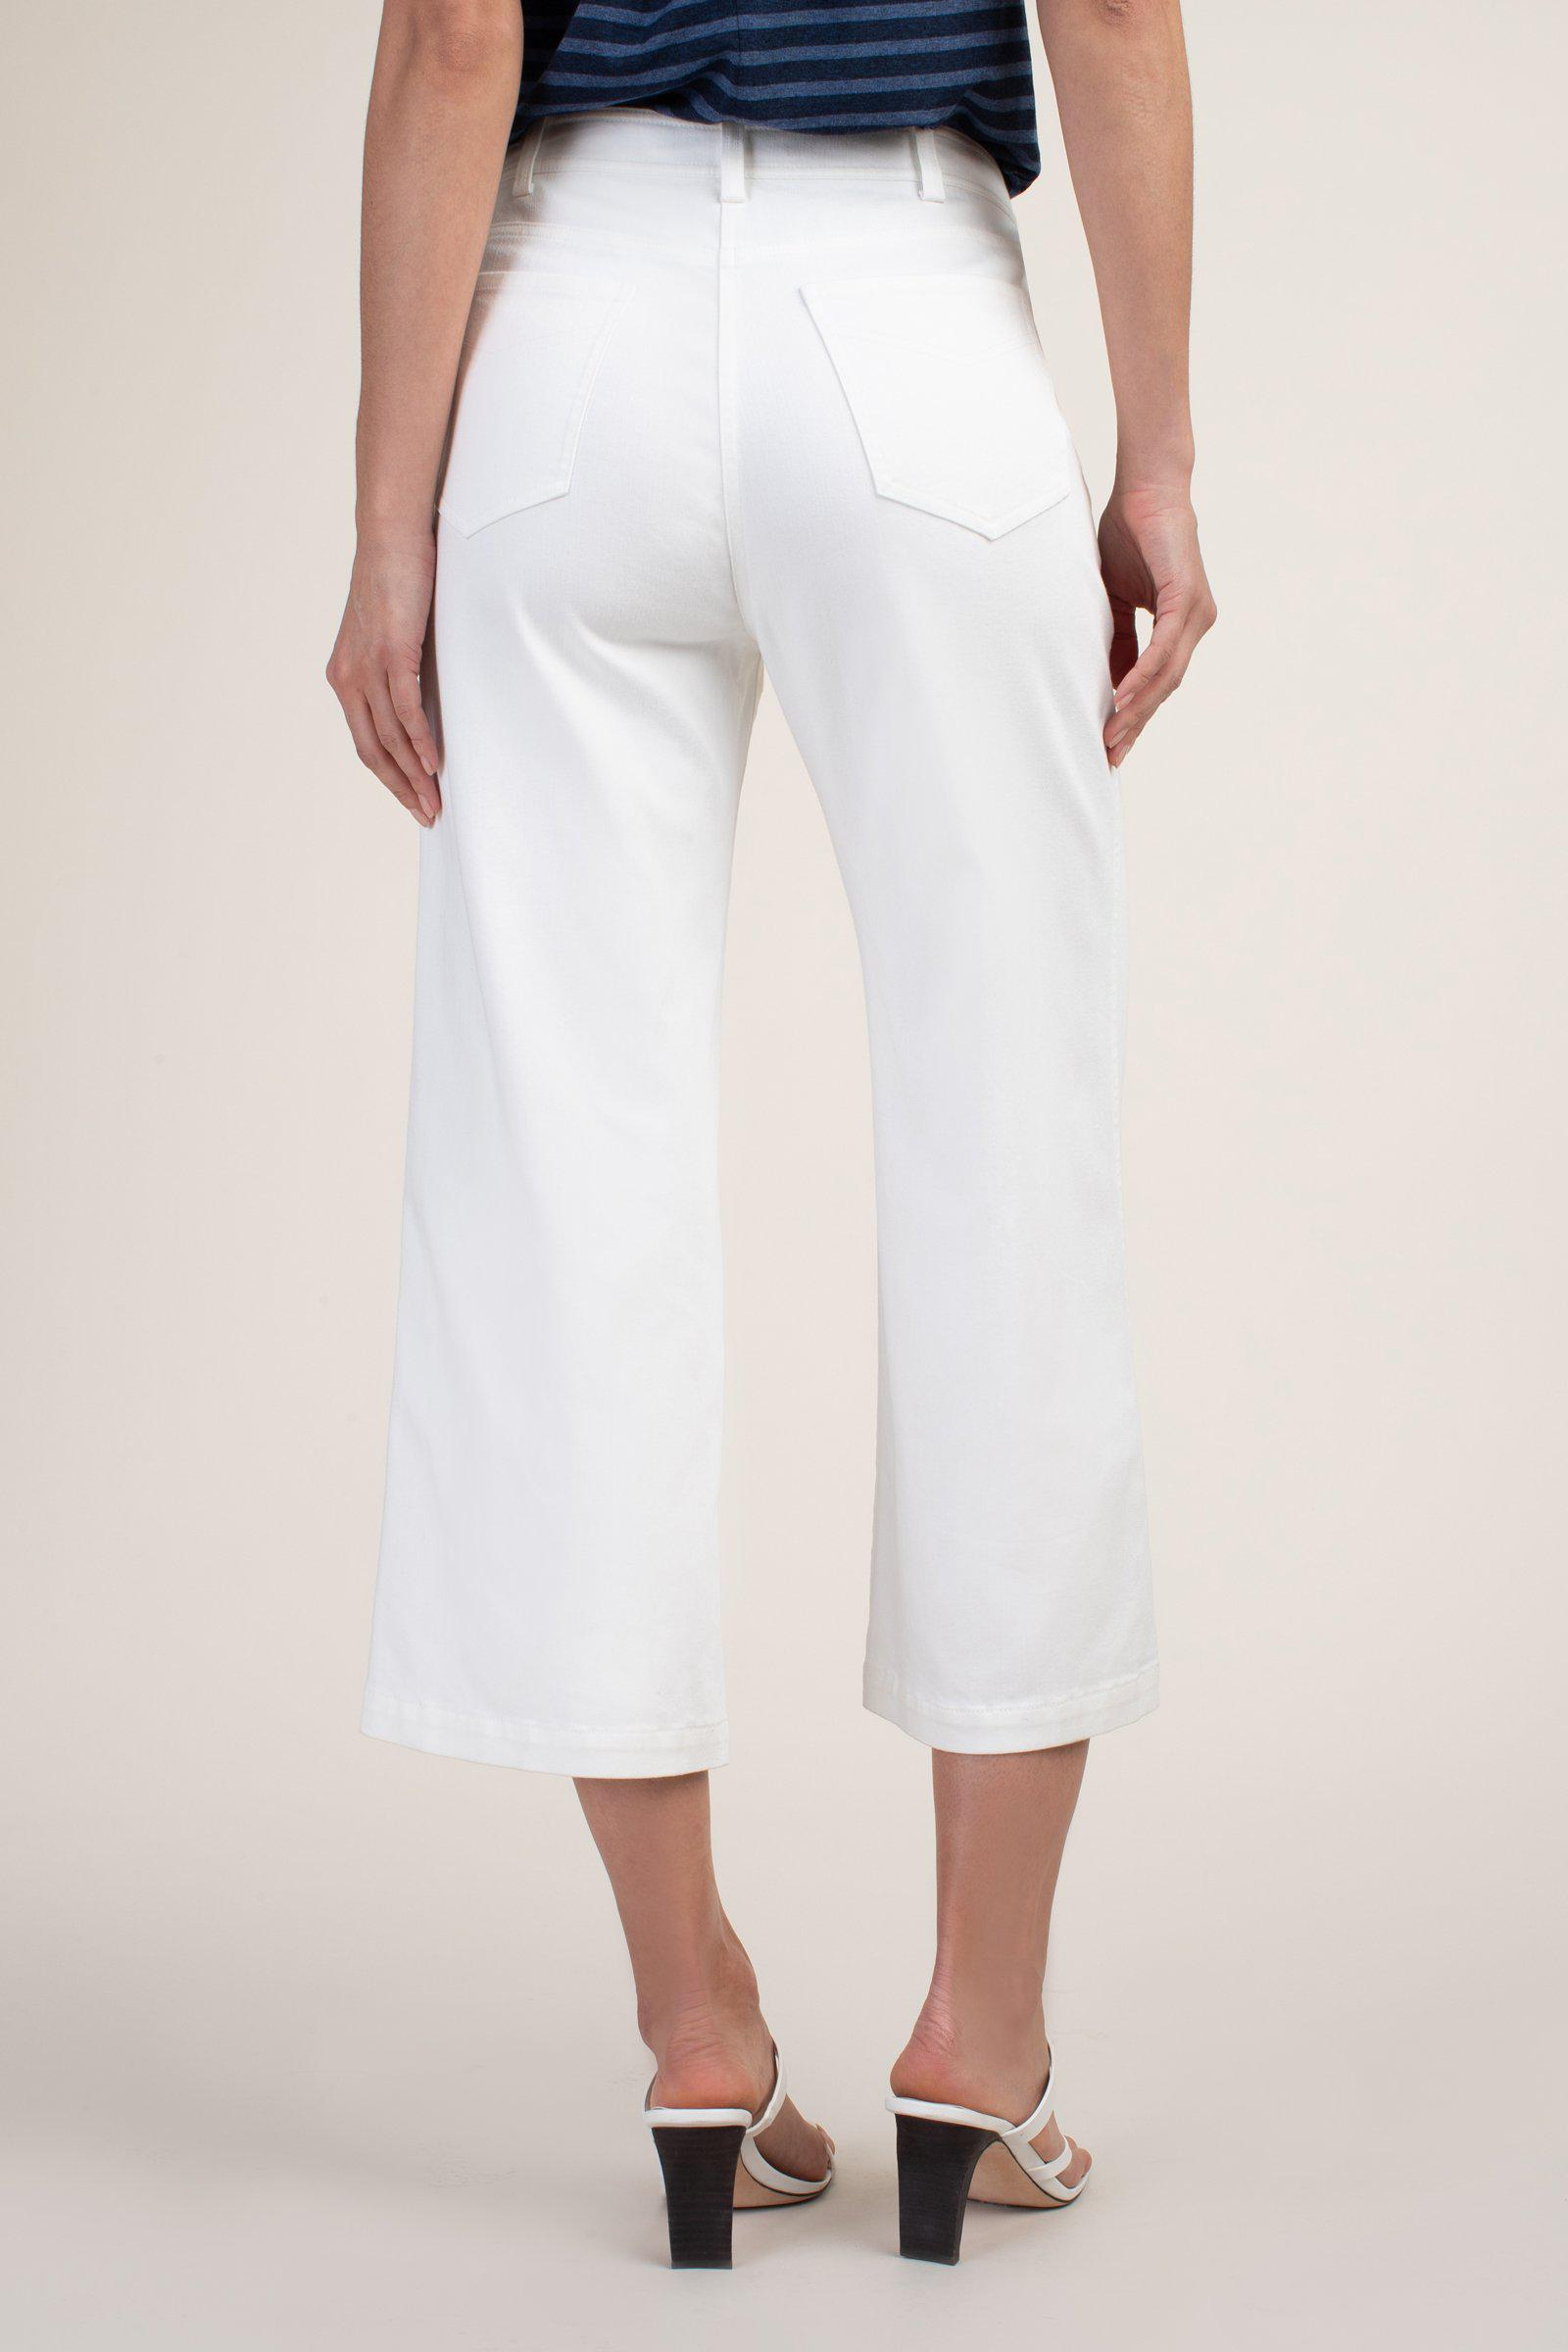 OUTSTANDING WHITE JEAN PANT 1